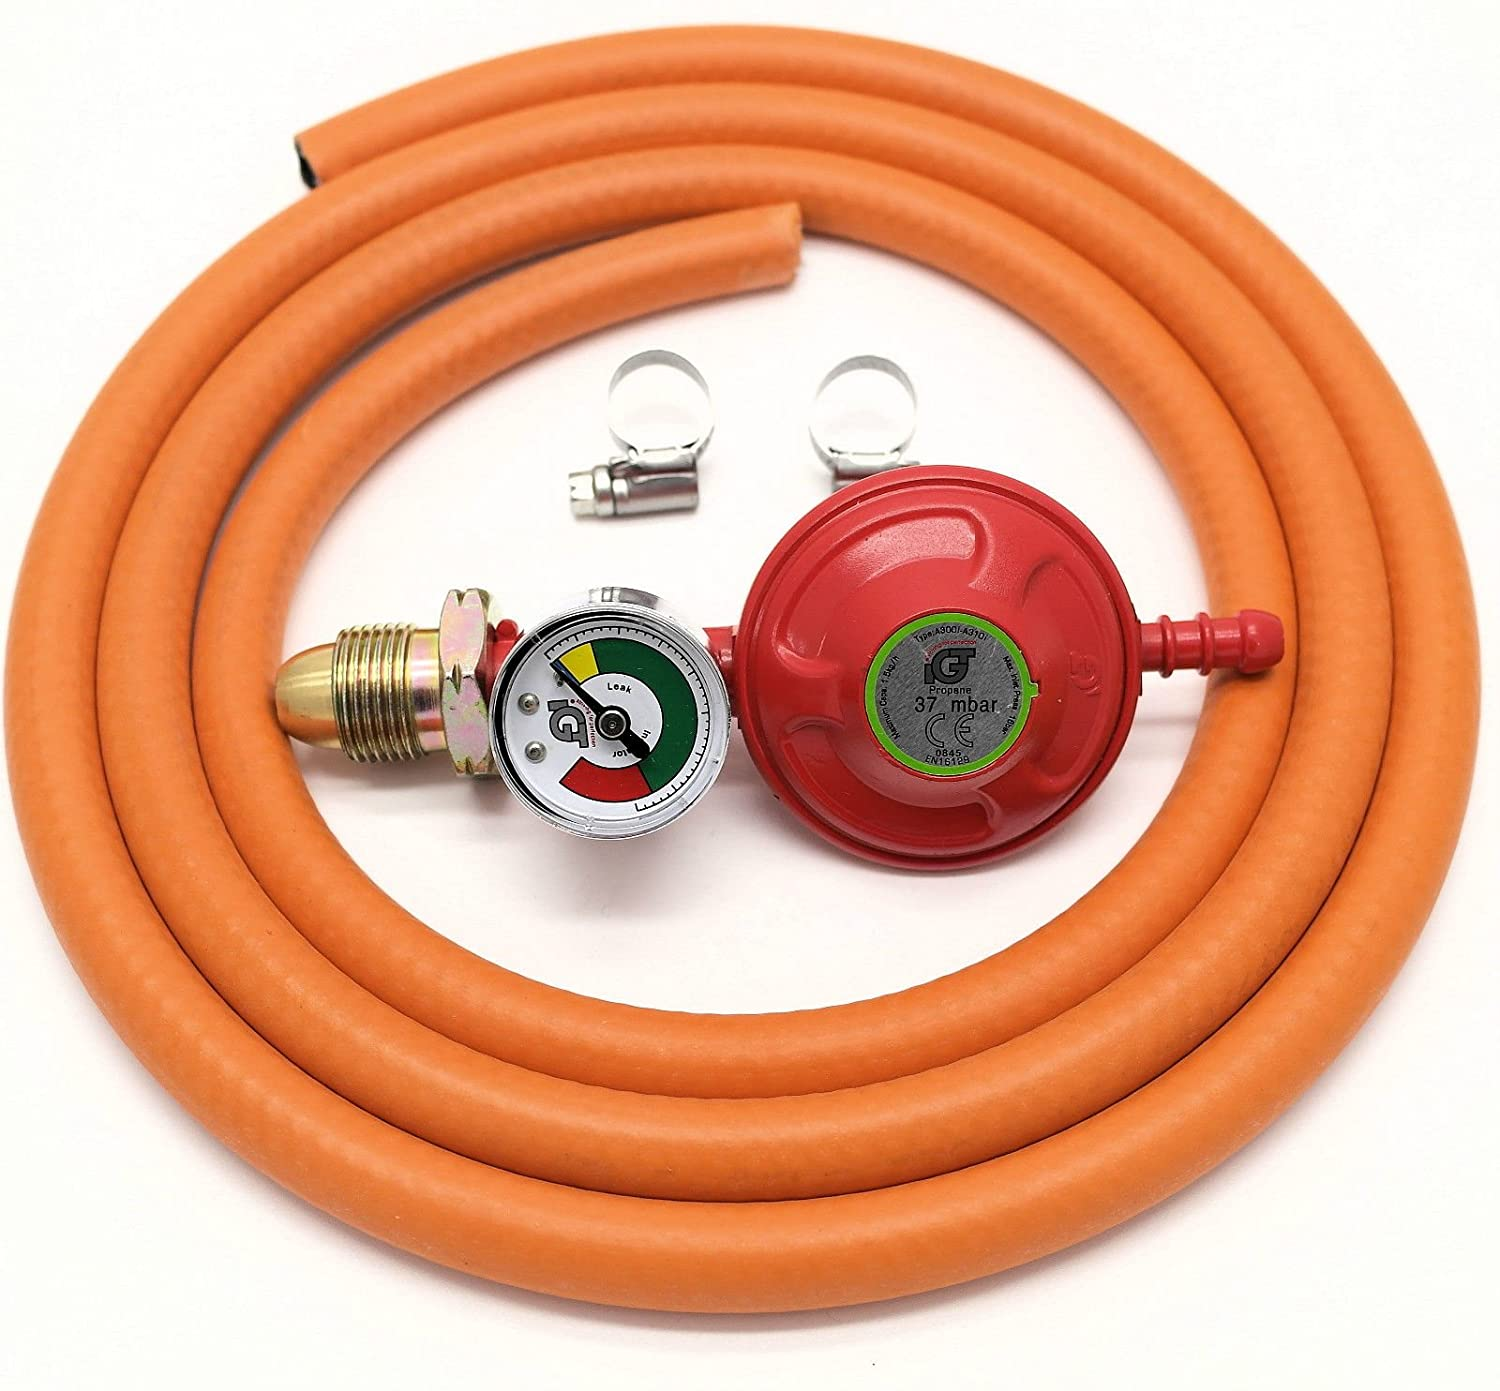 IGT 37mbar PROPANE GAS REGULATOR WITH PRESSURE GAUGE /& 2 M HOSE KIT WITH 2 CLIPS